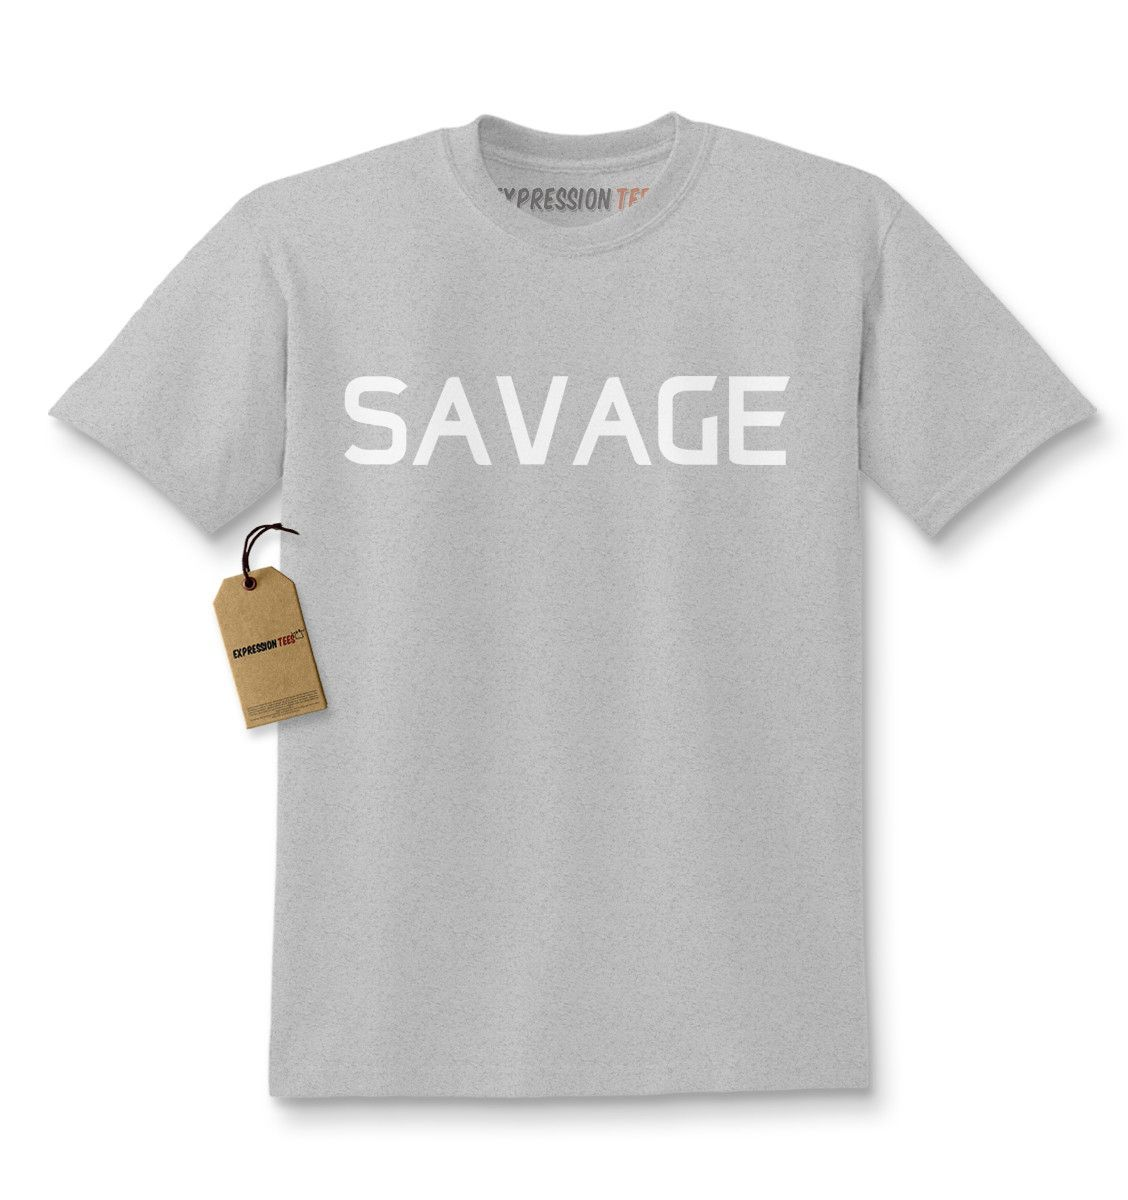 Expression Tees Savage Kids T Shirt Walmart Com Walmart Com